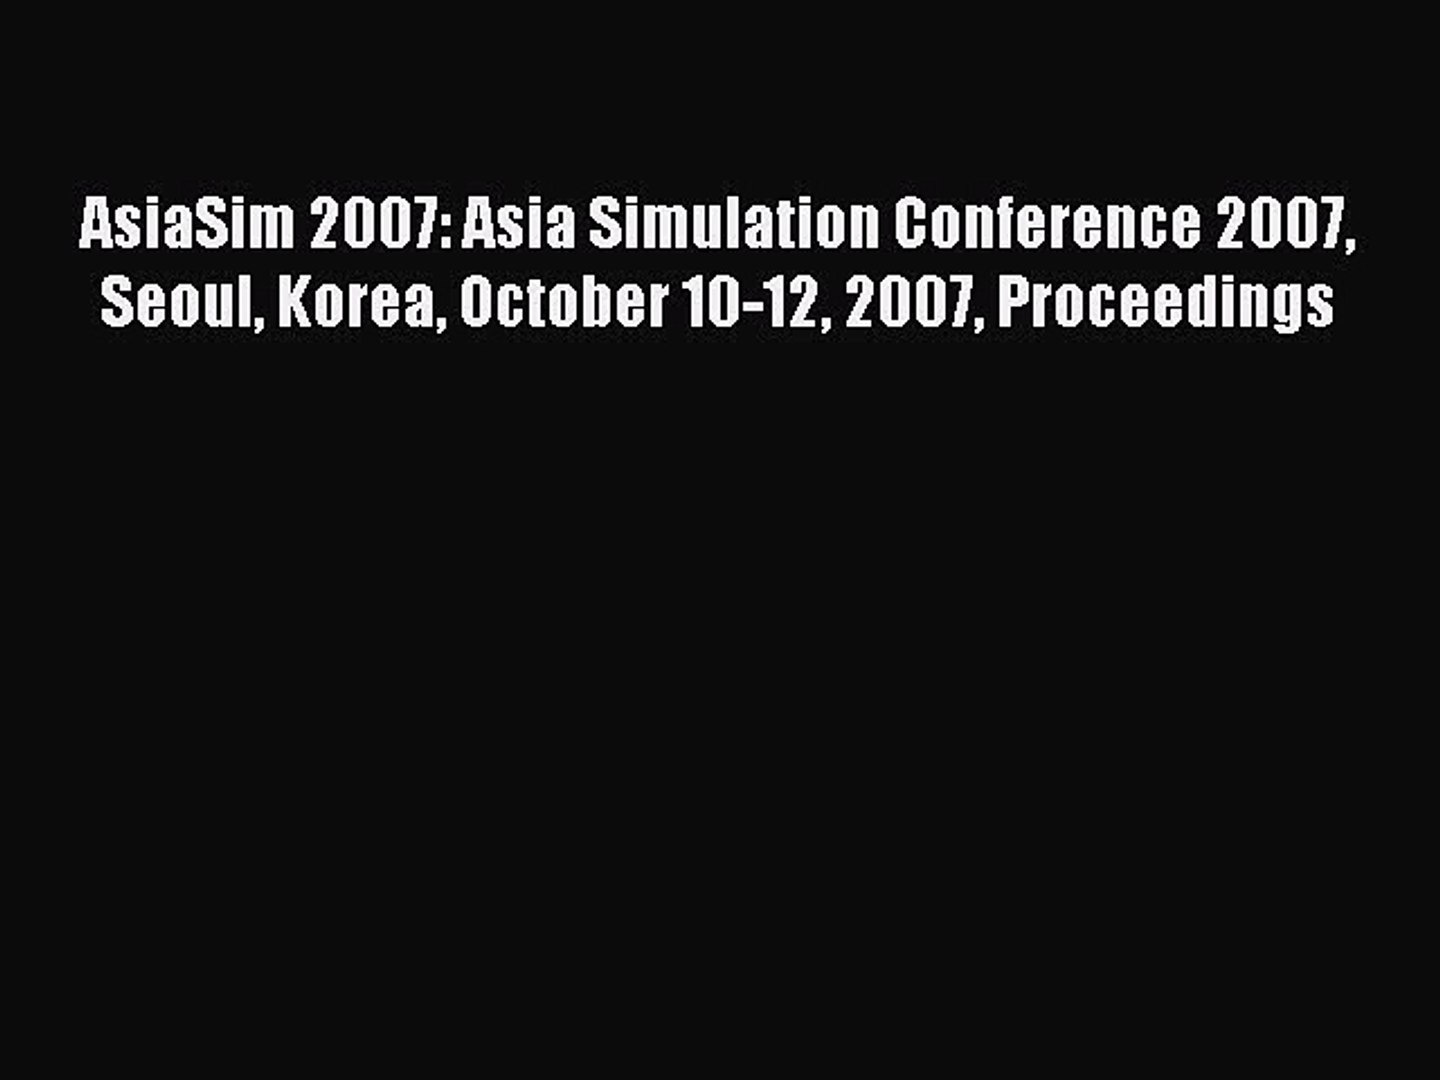 Download AsiaSim 2007: Asia Simulation Conference 2007 Seoul Korea October 10-12 2007 Proceedings